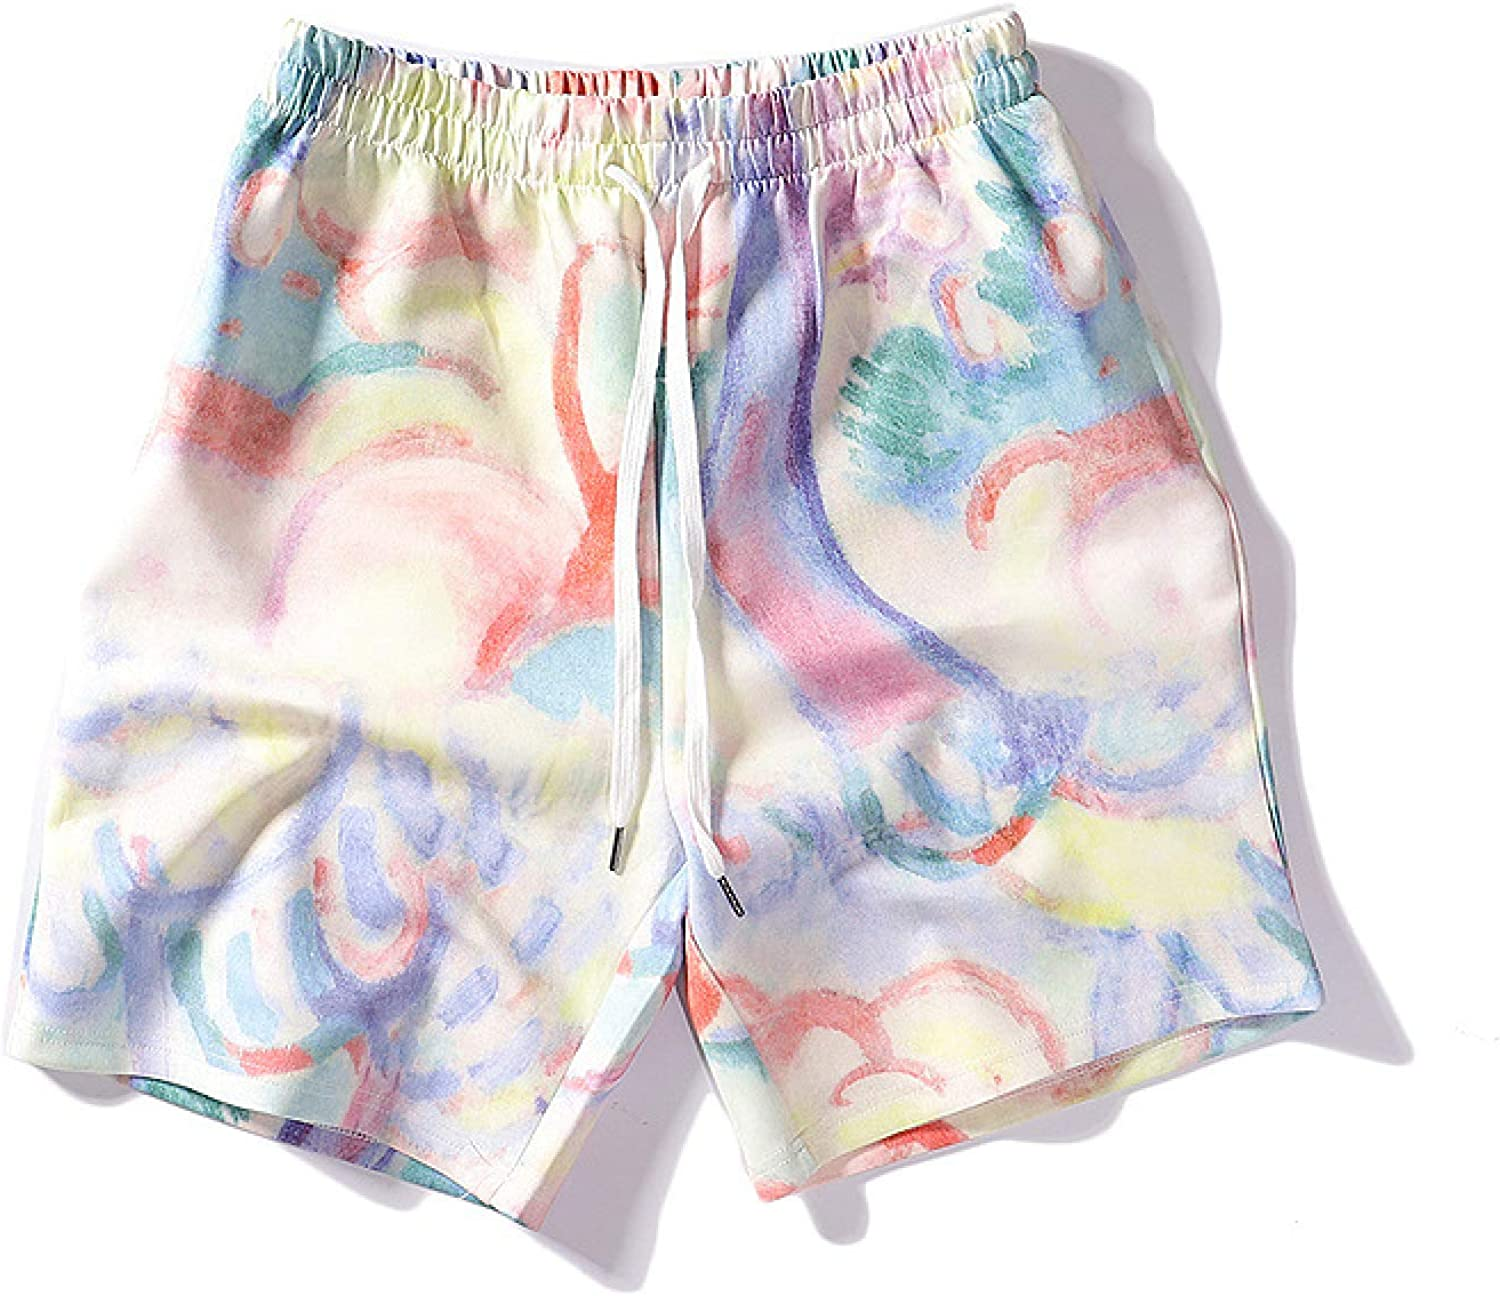 Men's Oil Painting Printed ColorBlocking Harlan 25% OFF Personal Shorts Super sale